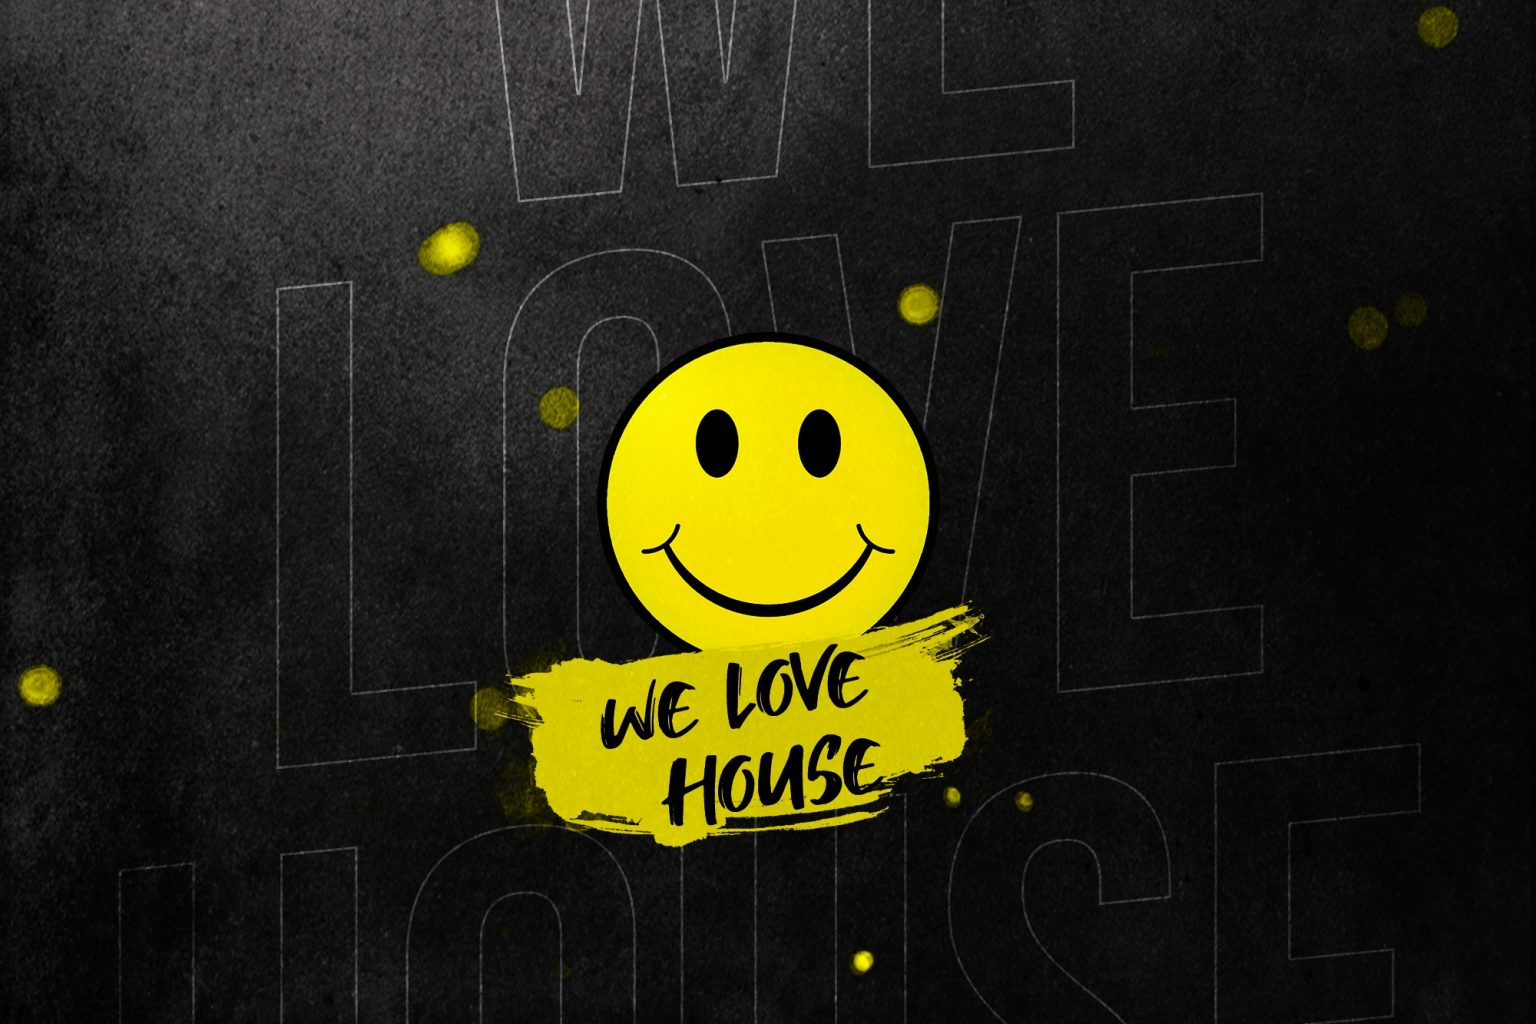 We-Love-House-Event-Banner-1536×1024